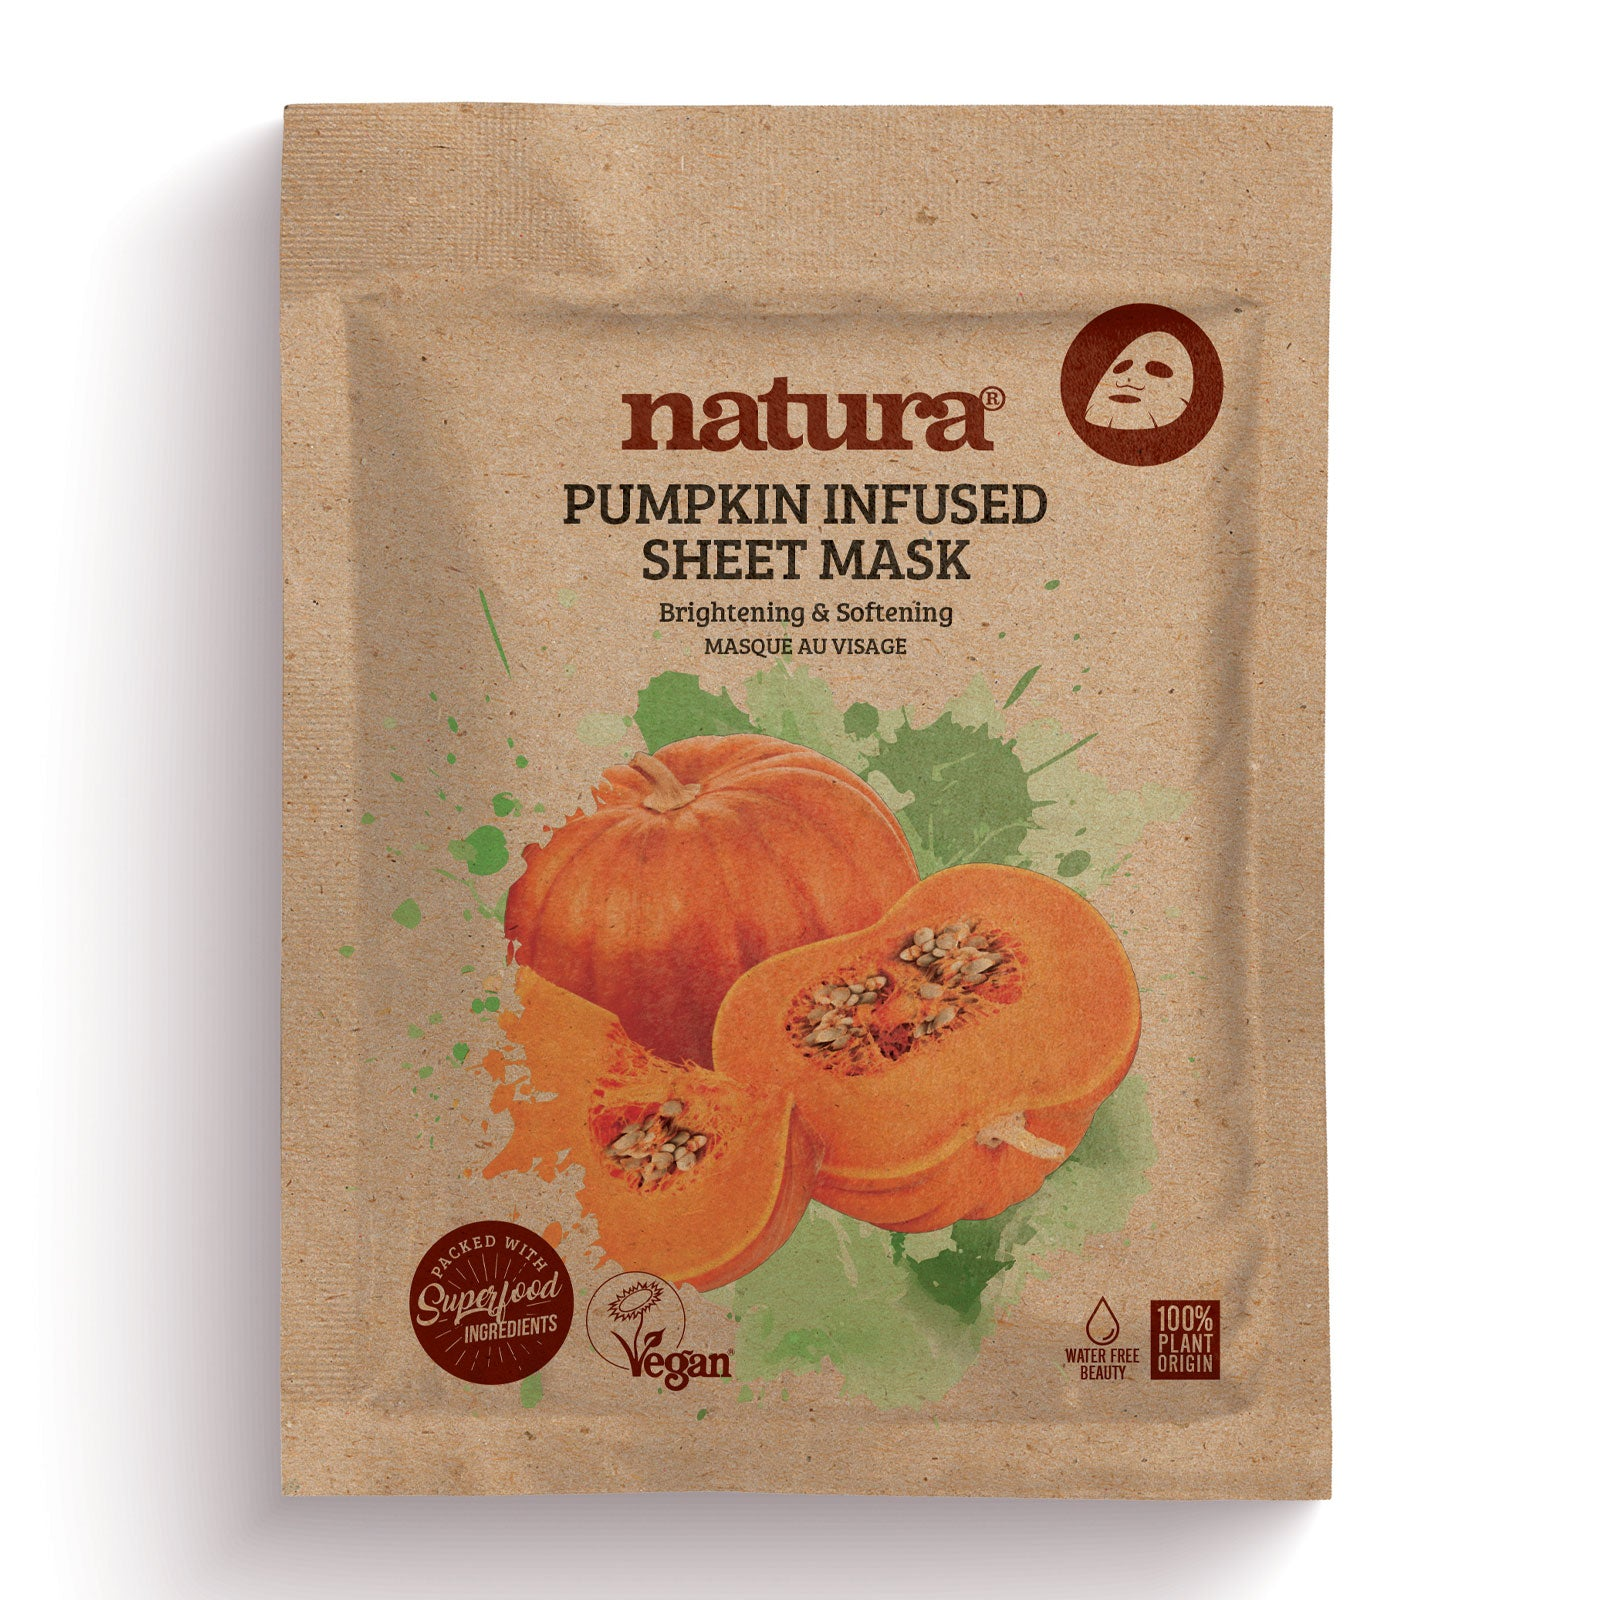 natura Pumpkin Infused Sheet Mask